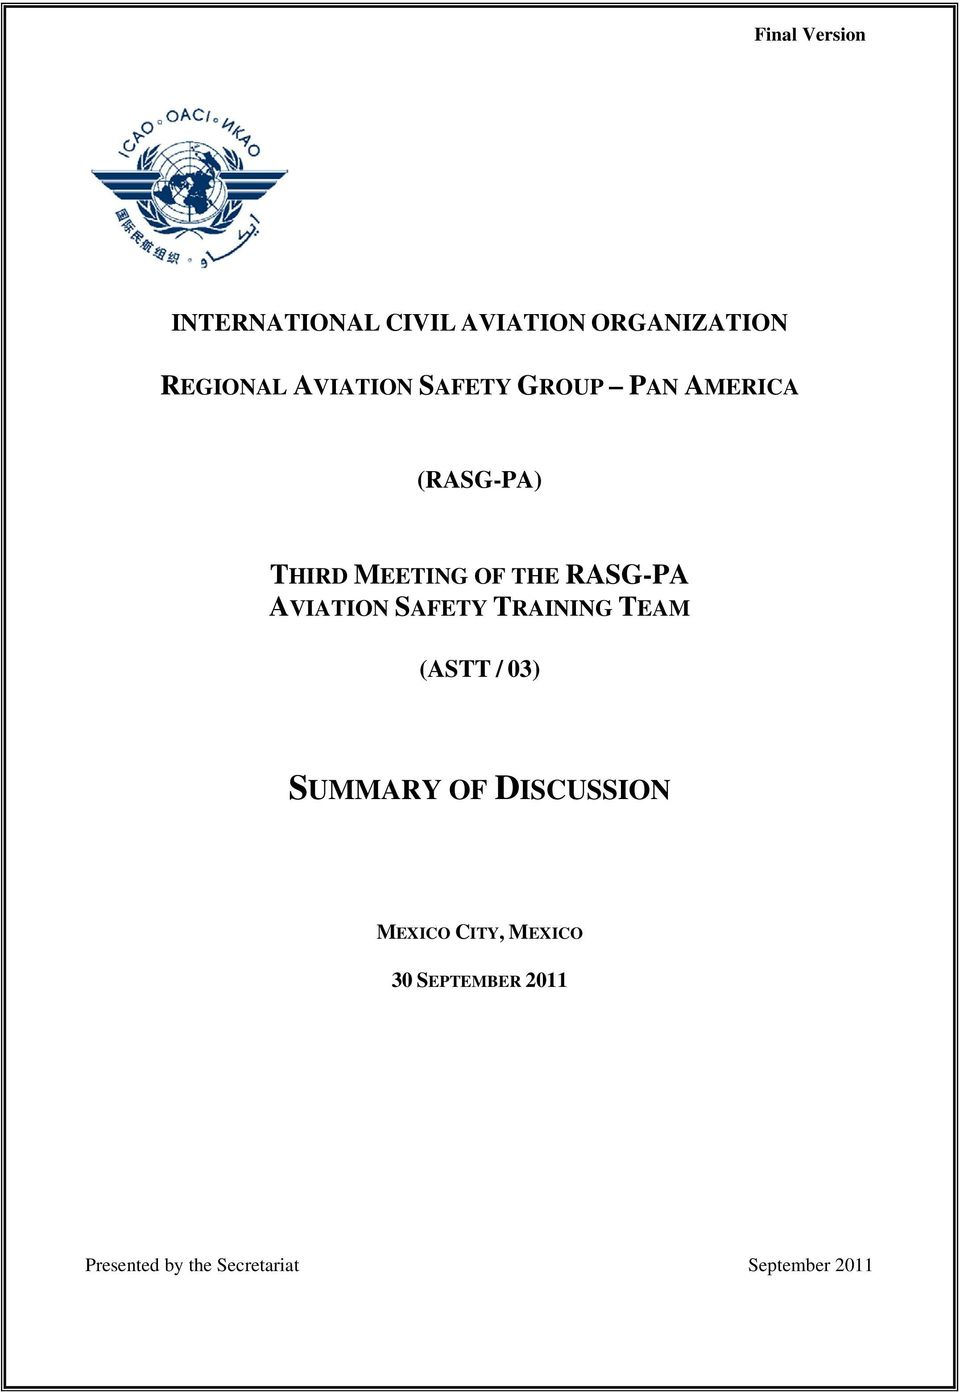 RASG-PA AVIATION SAFETY TRAINING TEAM (ASTT / 03) SUMMARY OF